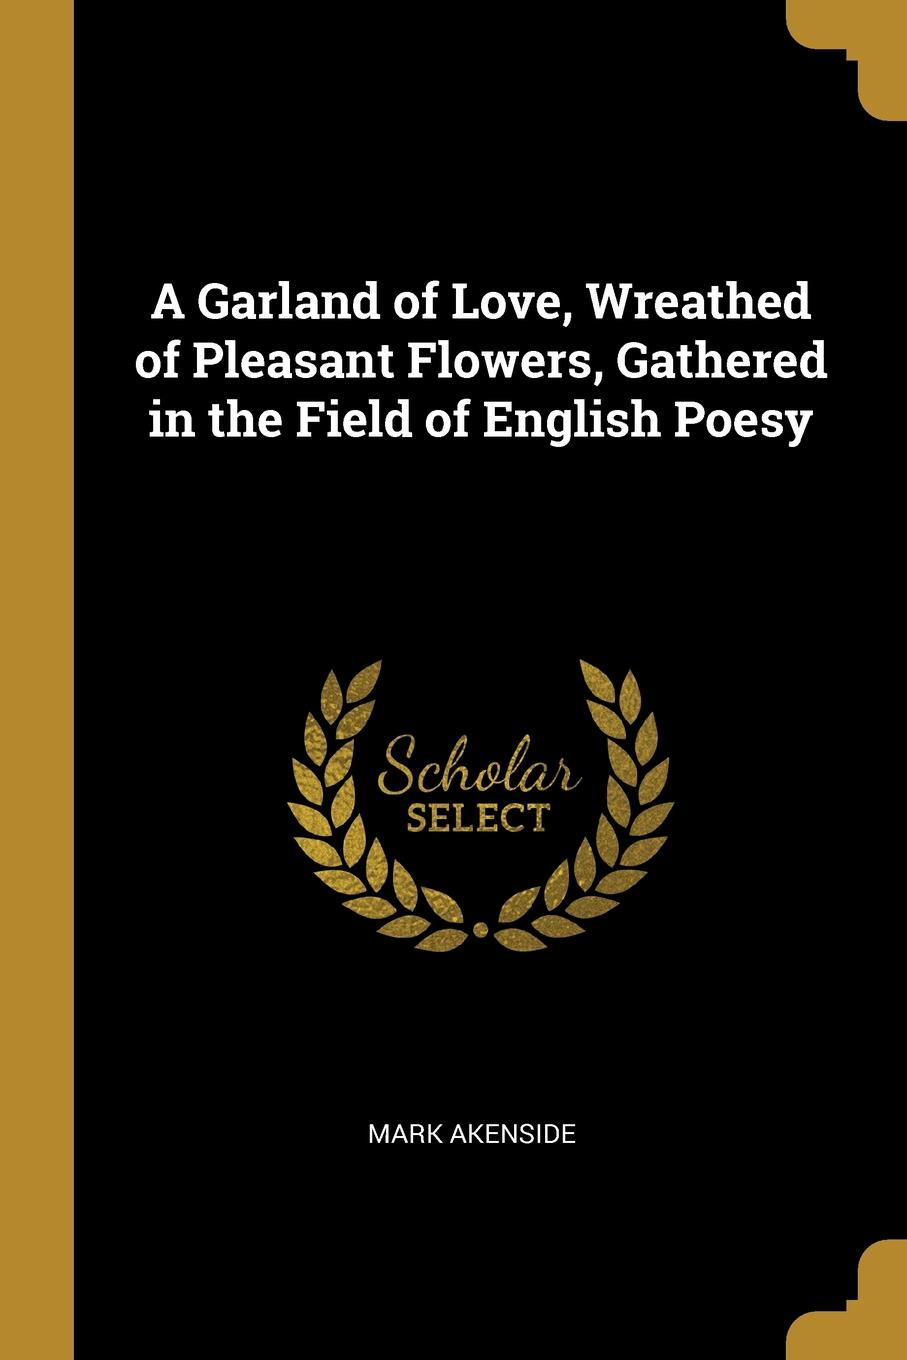 Mark Akenside A Garland of Love, Wreathed of Pleasant Flowers, Gathered in the Field of English Poesy wreathed